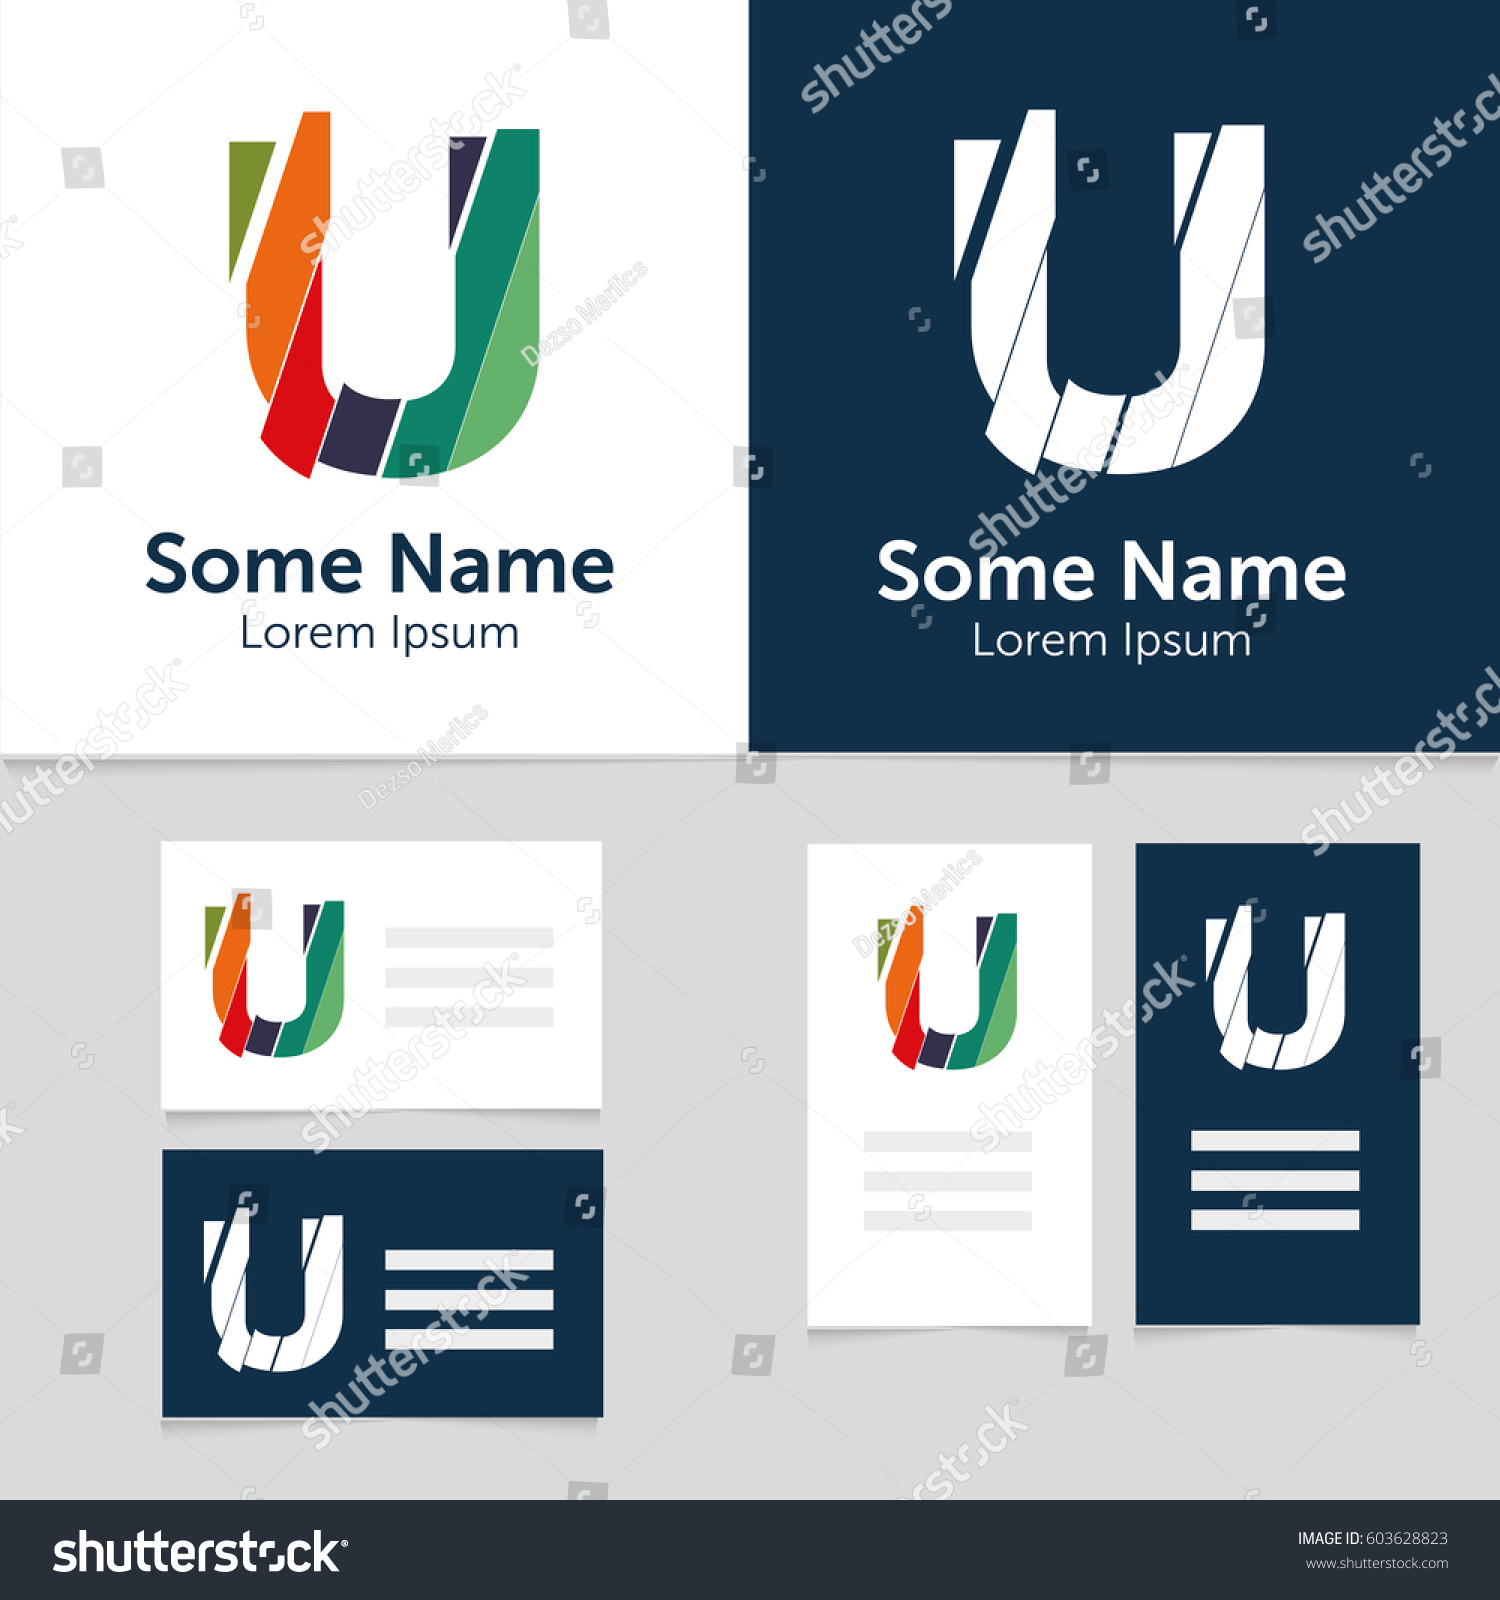 Editable business card template u letter stock vector 603628823 editable business card template with u letter logoctor illustrationeps10 cheaphphosting Choice Image